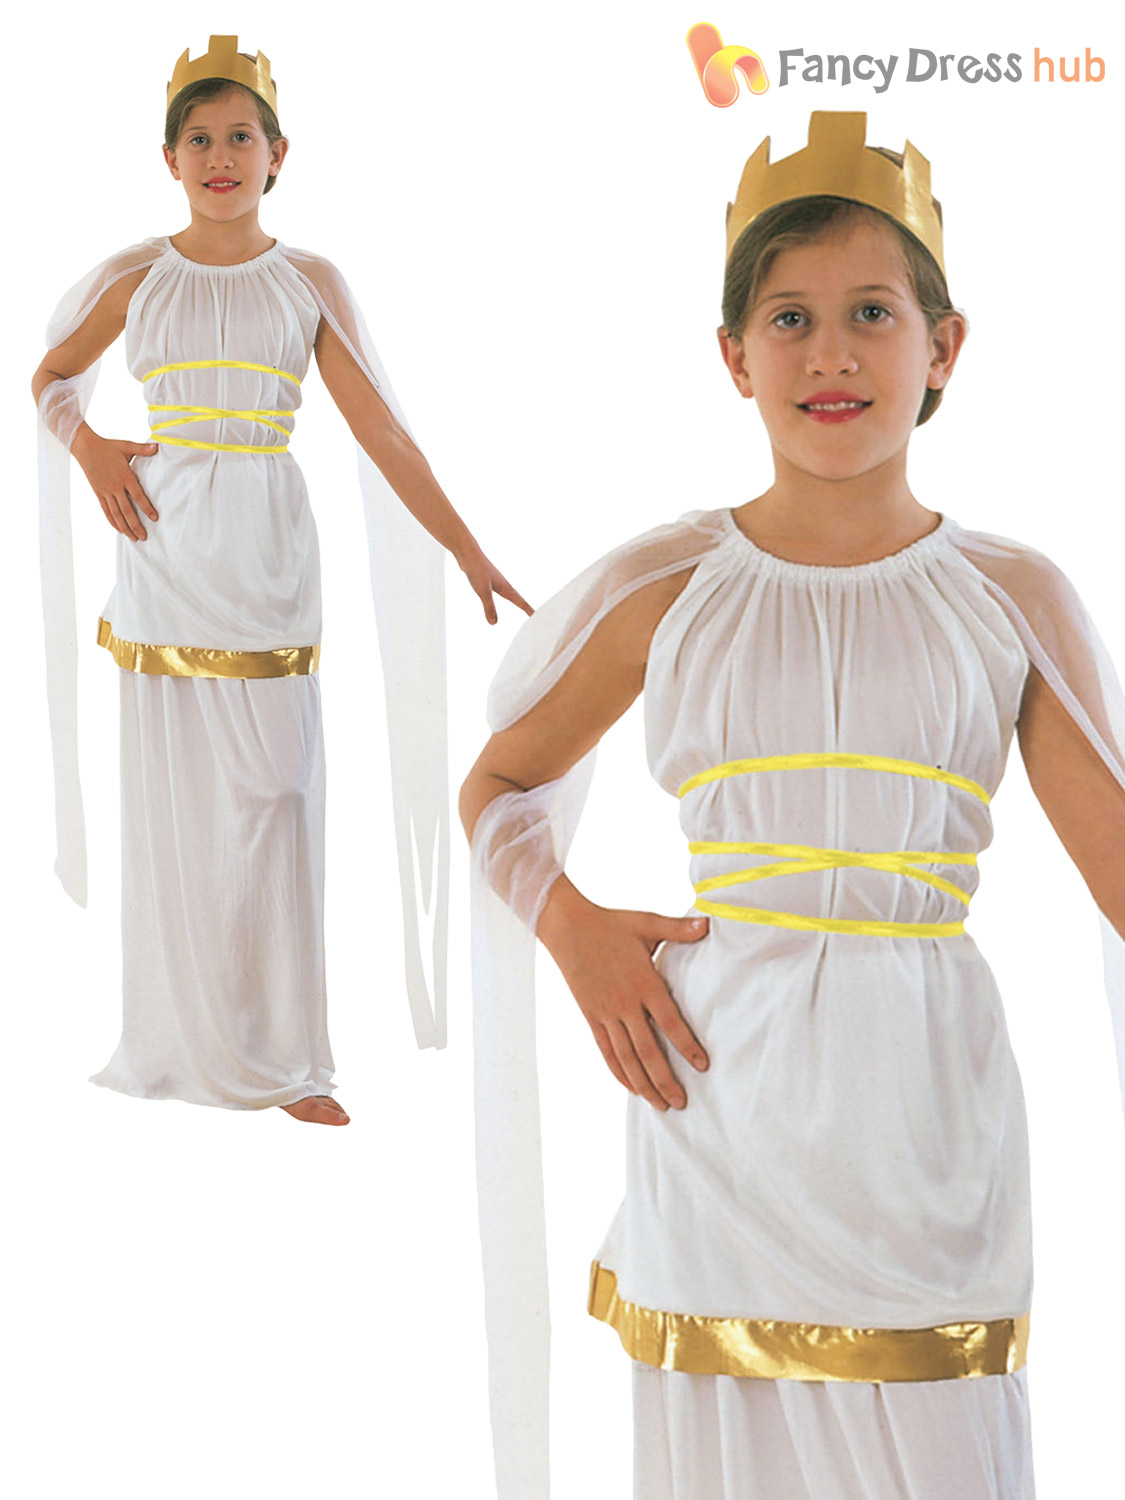 Look to ancient Greek statues when making ancient Greek clothing for kids. According to Kidipede, most children in ancient Greece wore a simple cloth wrapped around their waists like shorts. However, if your child needs a Greek costume for Halloween or a school pay, dress them up as you would an.